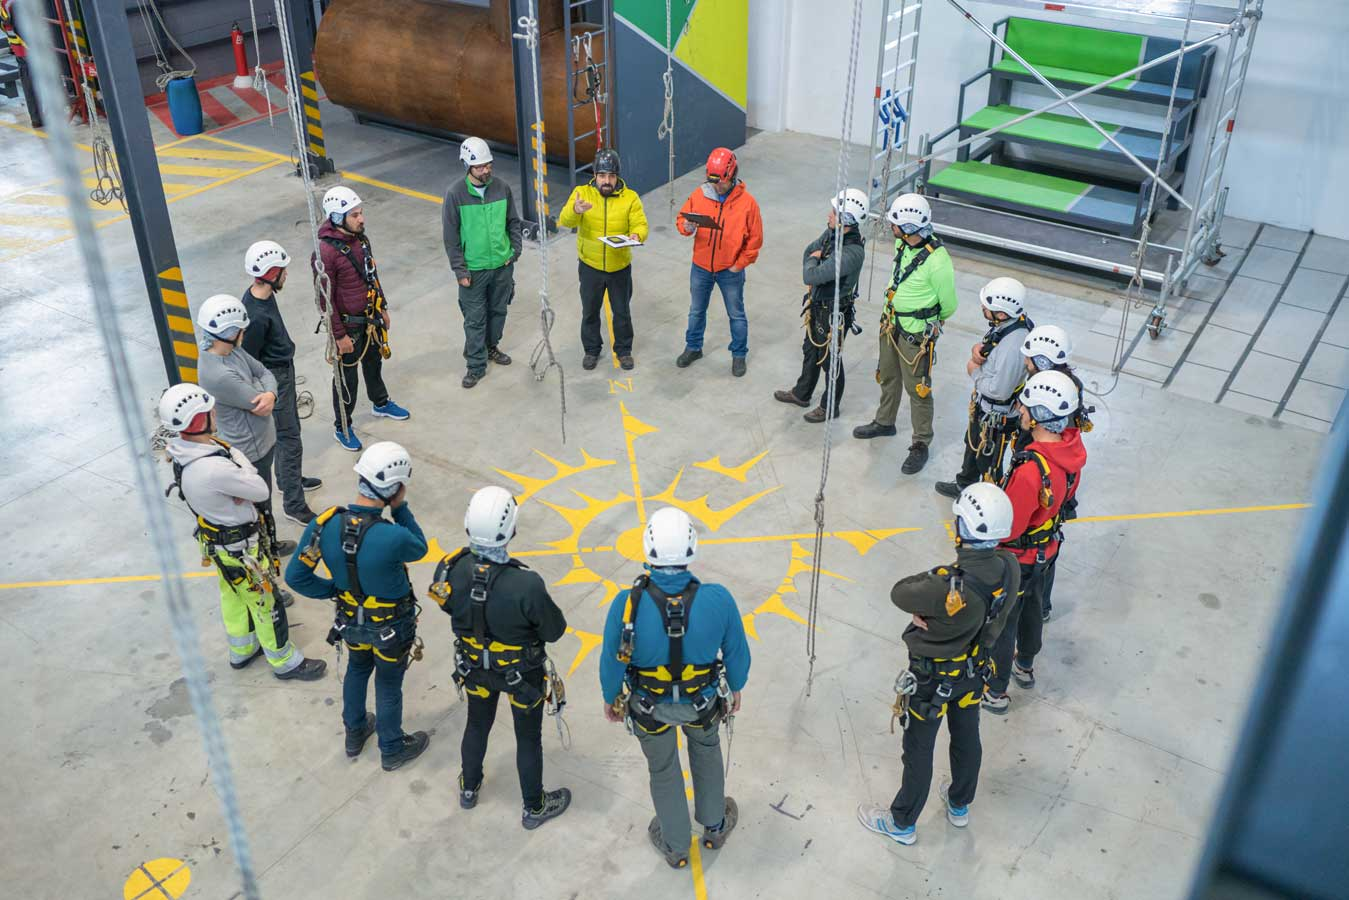 Importance of Fire Safety Training at Workplace